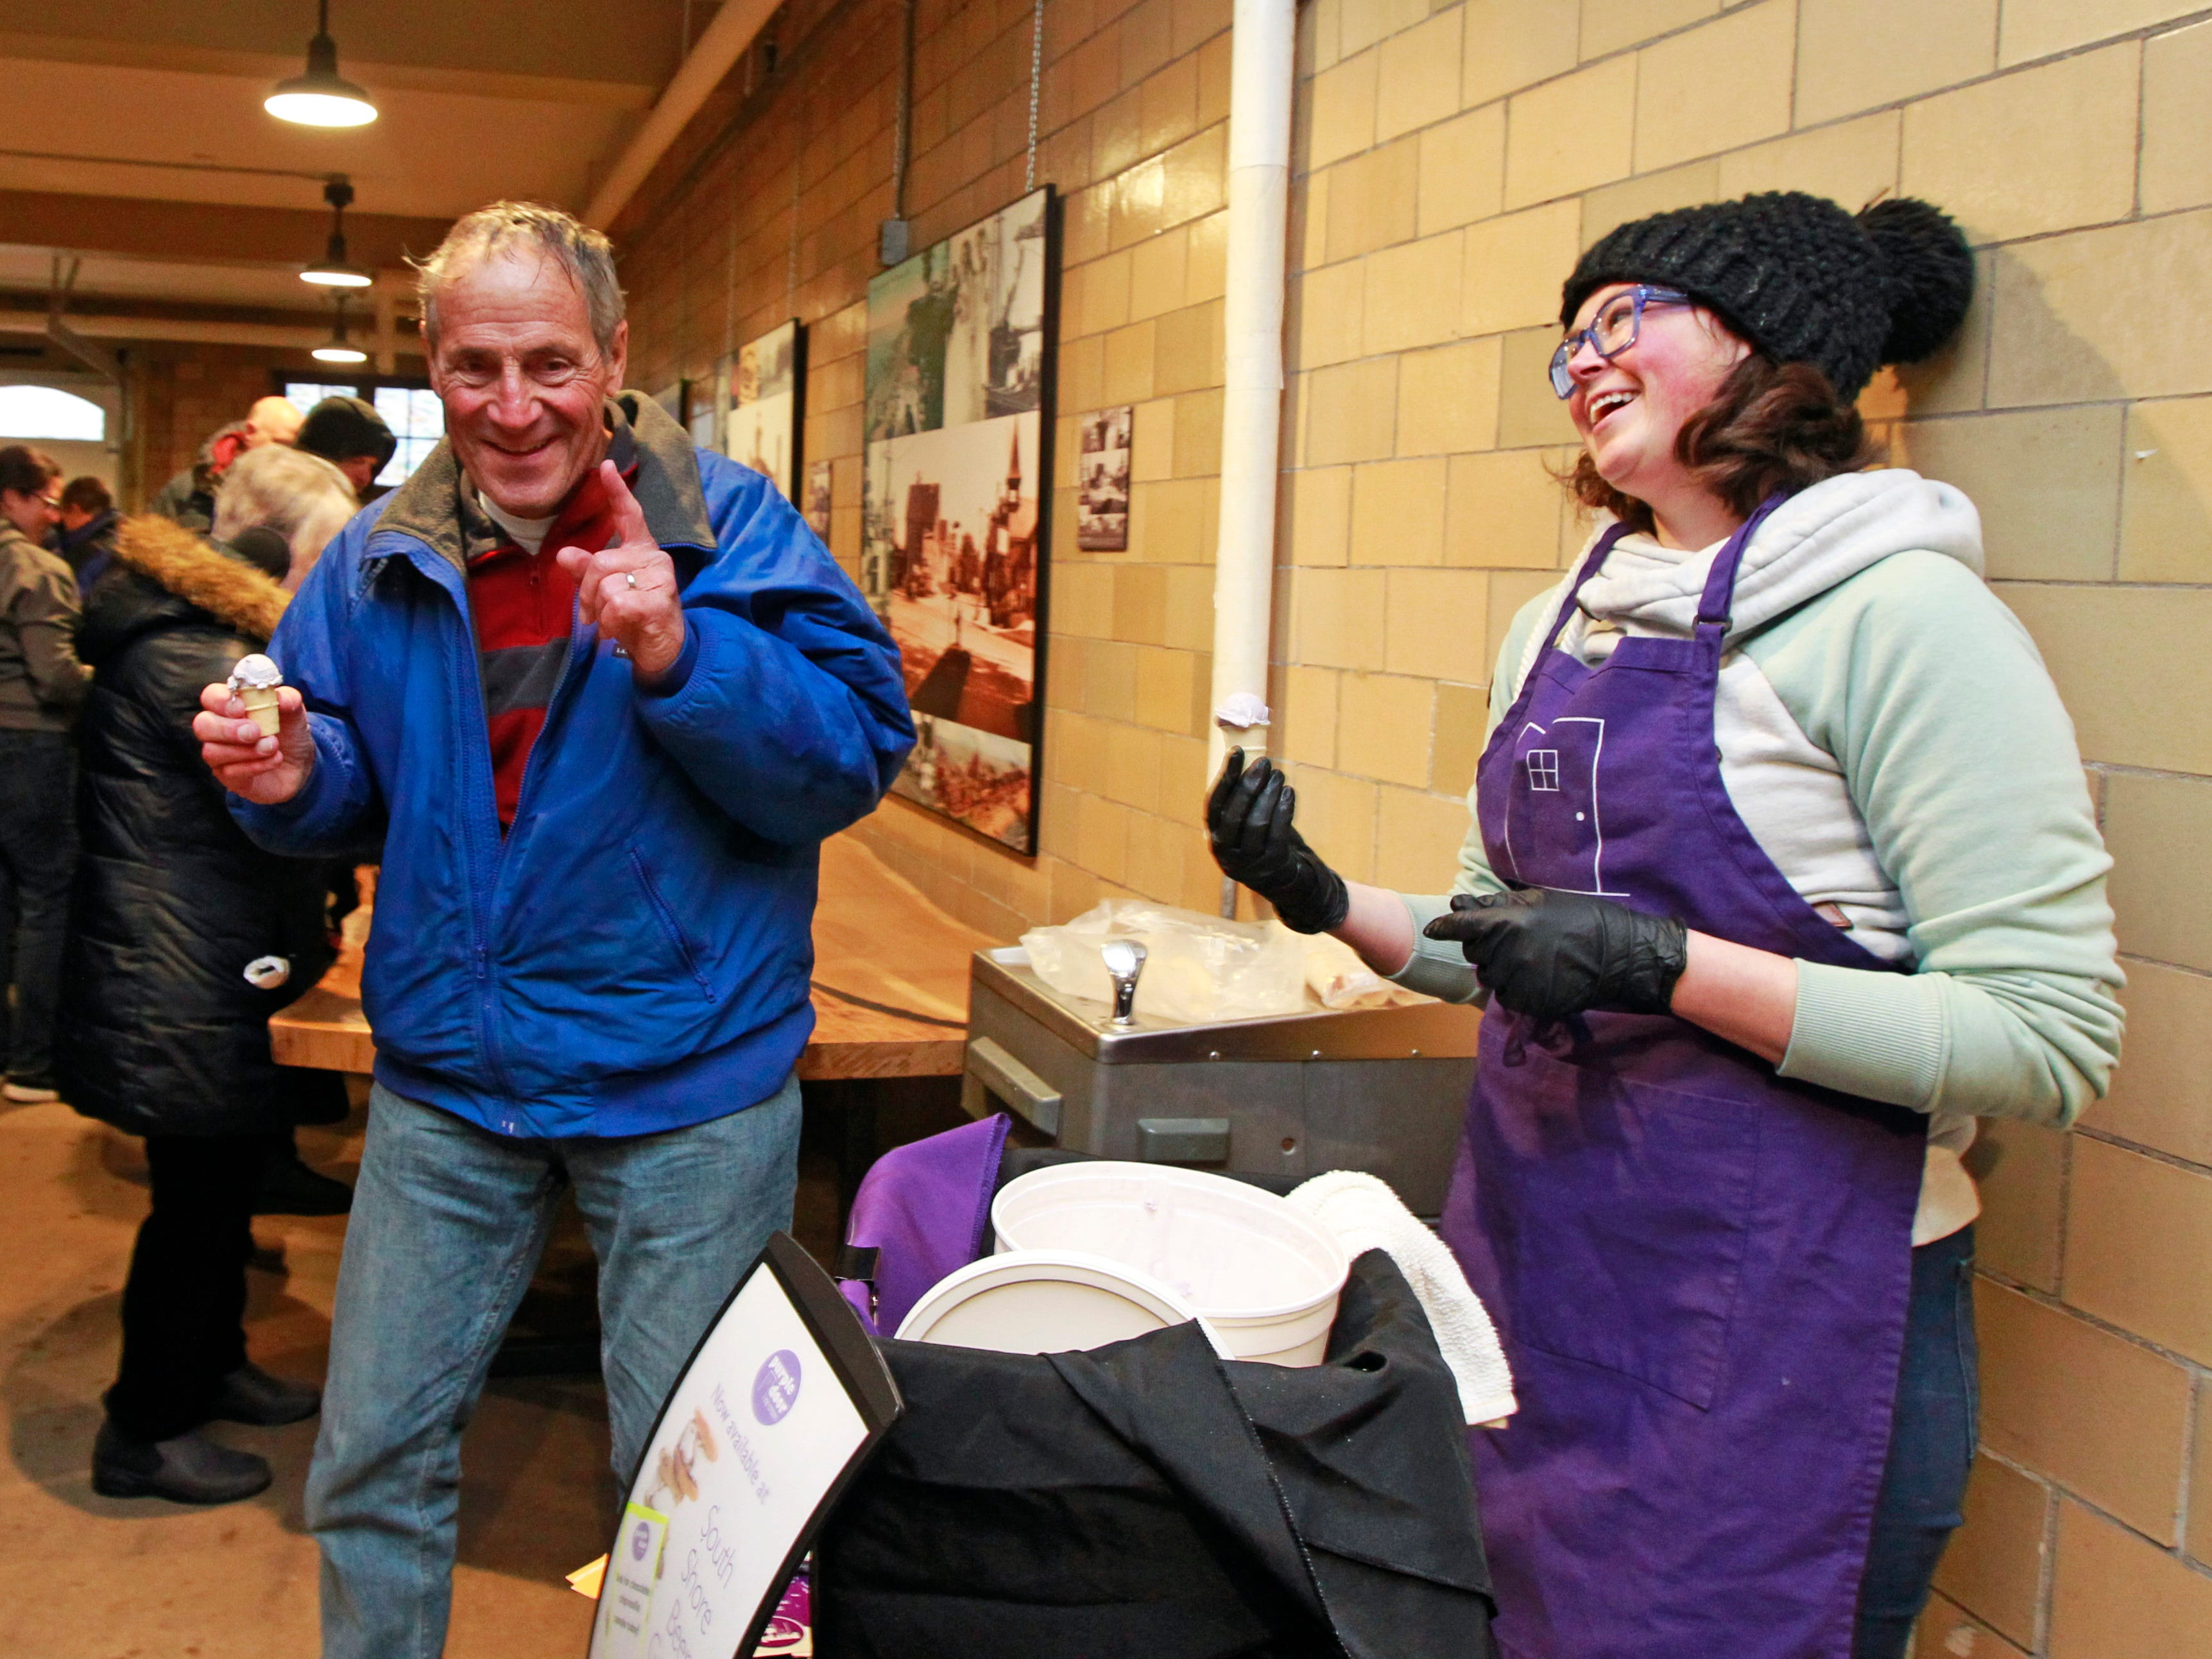 Lindsay Stayton Mannebach (right), from Purlple Door Ice Cream, offers the company's new flavor -- Purple Moon --  to those attending the beer garden at South Shore Terrace on Wednesday.